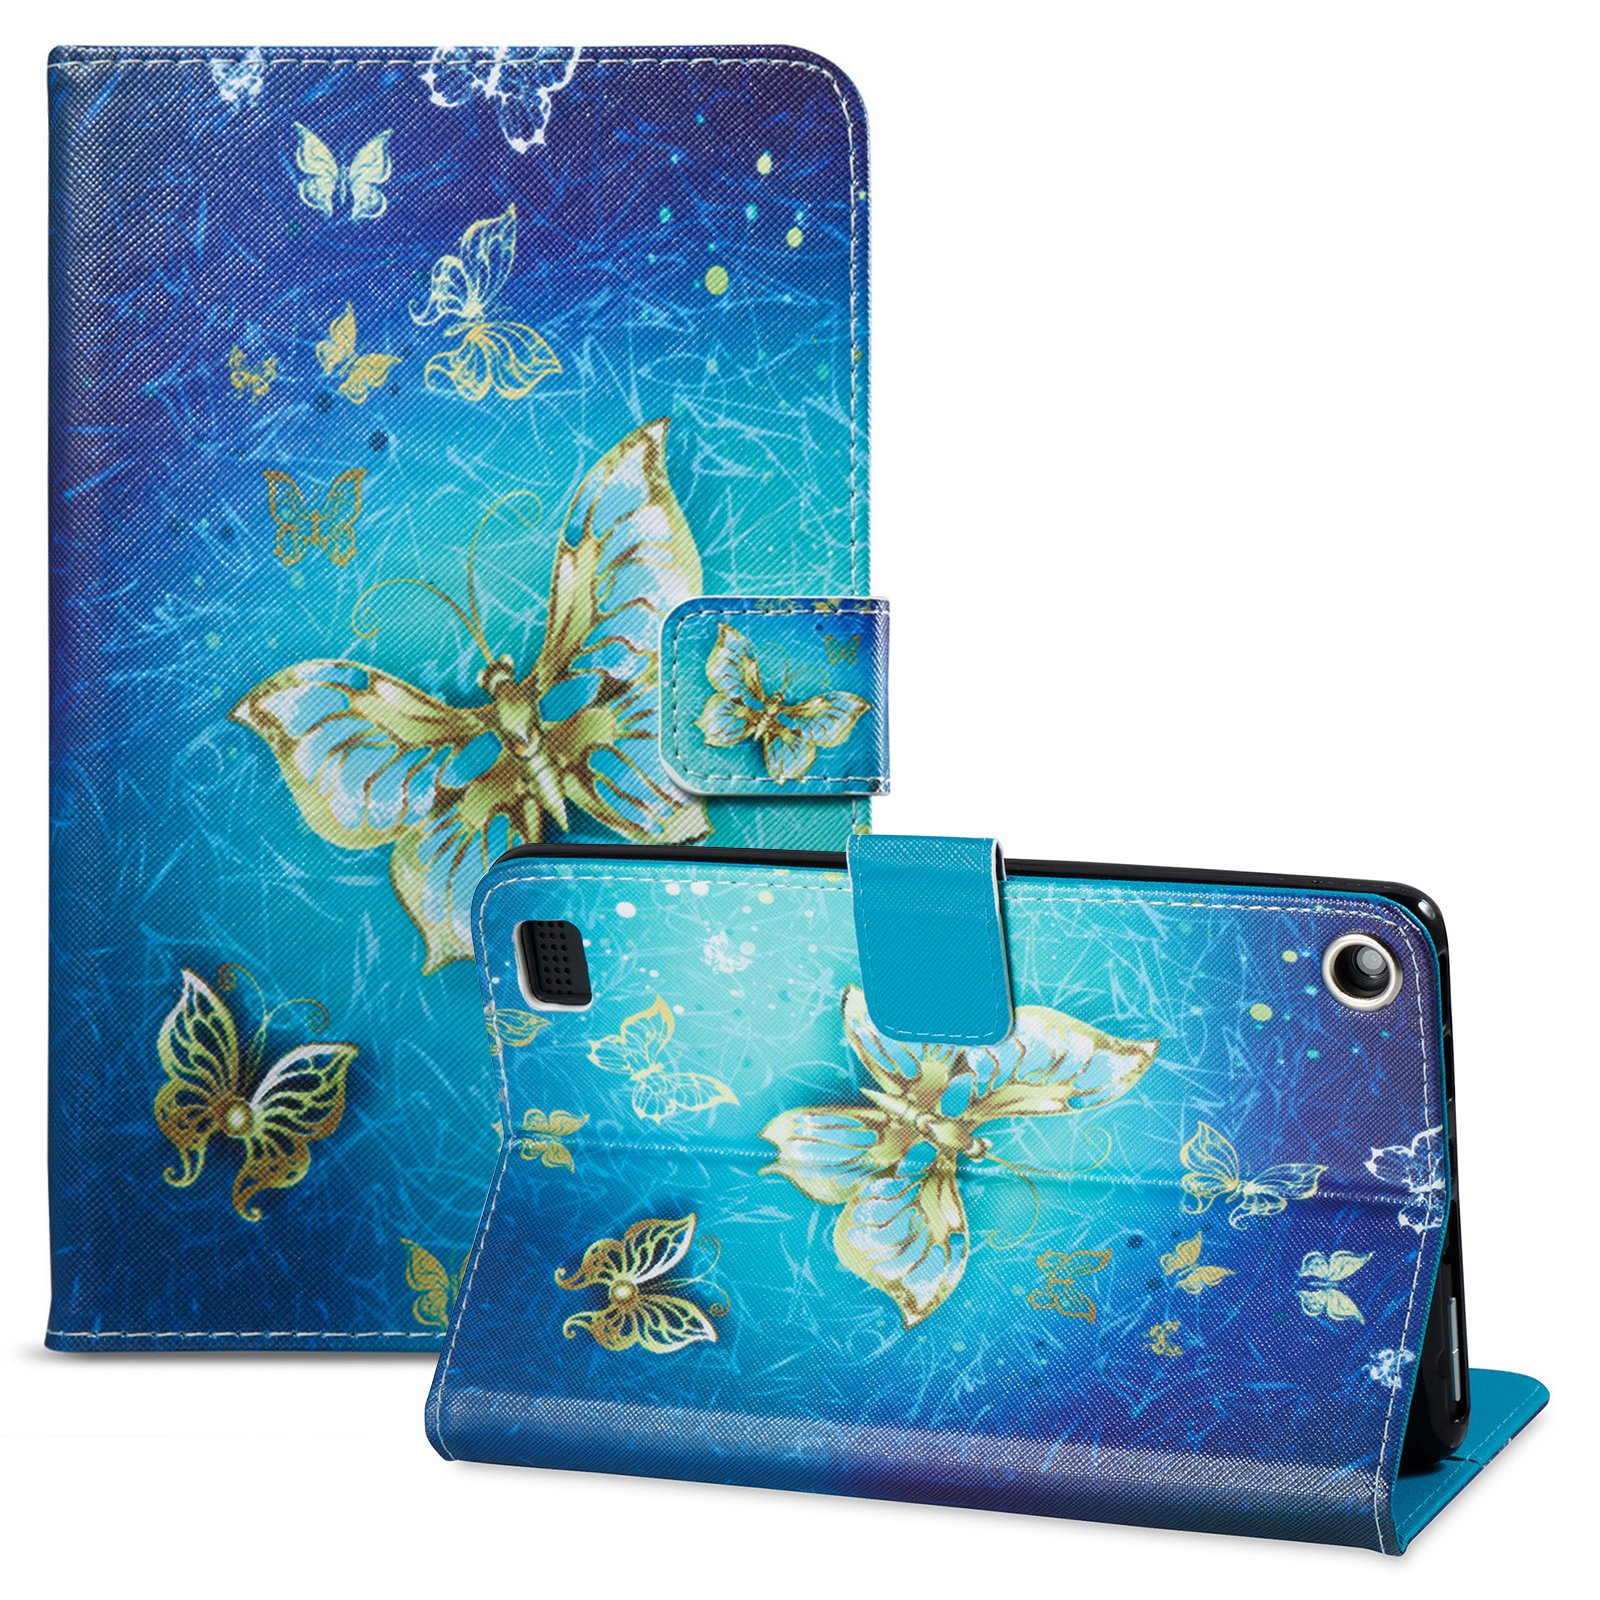 UUcovers Folio Case for Amazon Fire 7 Tablet (5th Gen,2015)-Slim Fit PU Leather Filp Stand Wallet Protective Cover,Golden Butterfly